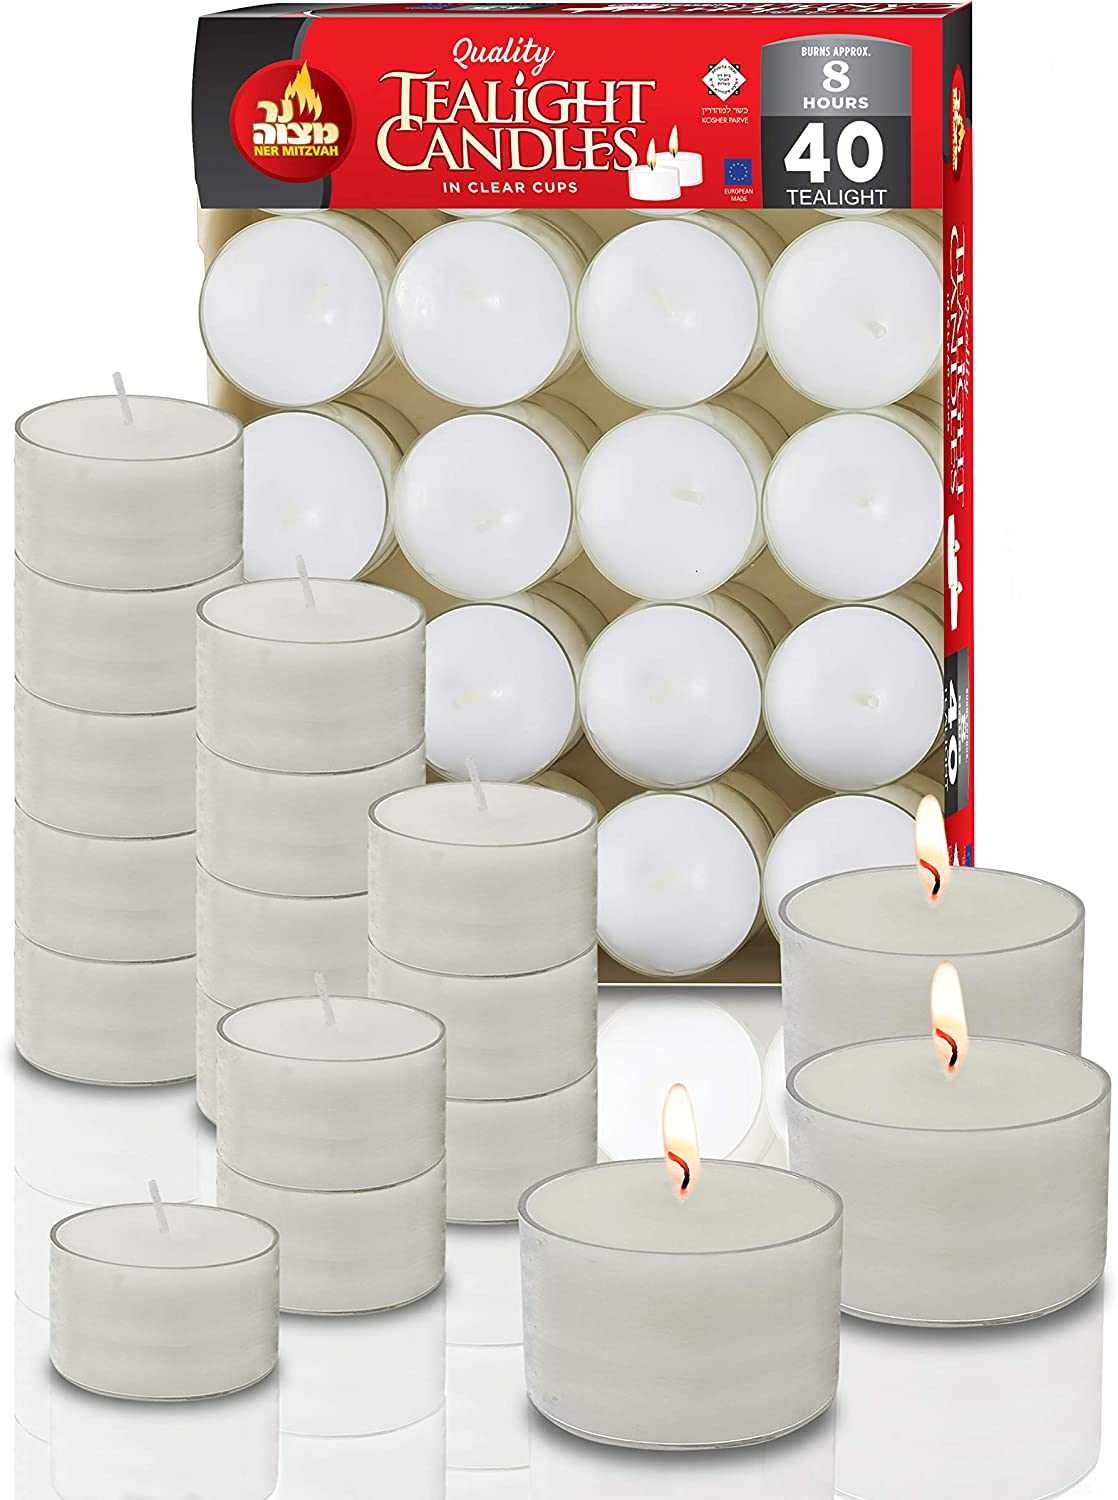 Ner Mitzvah Long Burning Tealight Candles C 8 Financial sales sale Hours - in White Department store